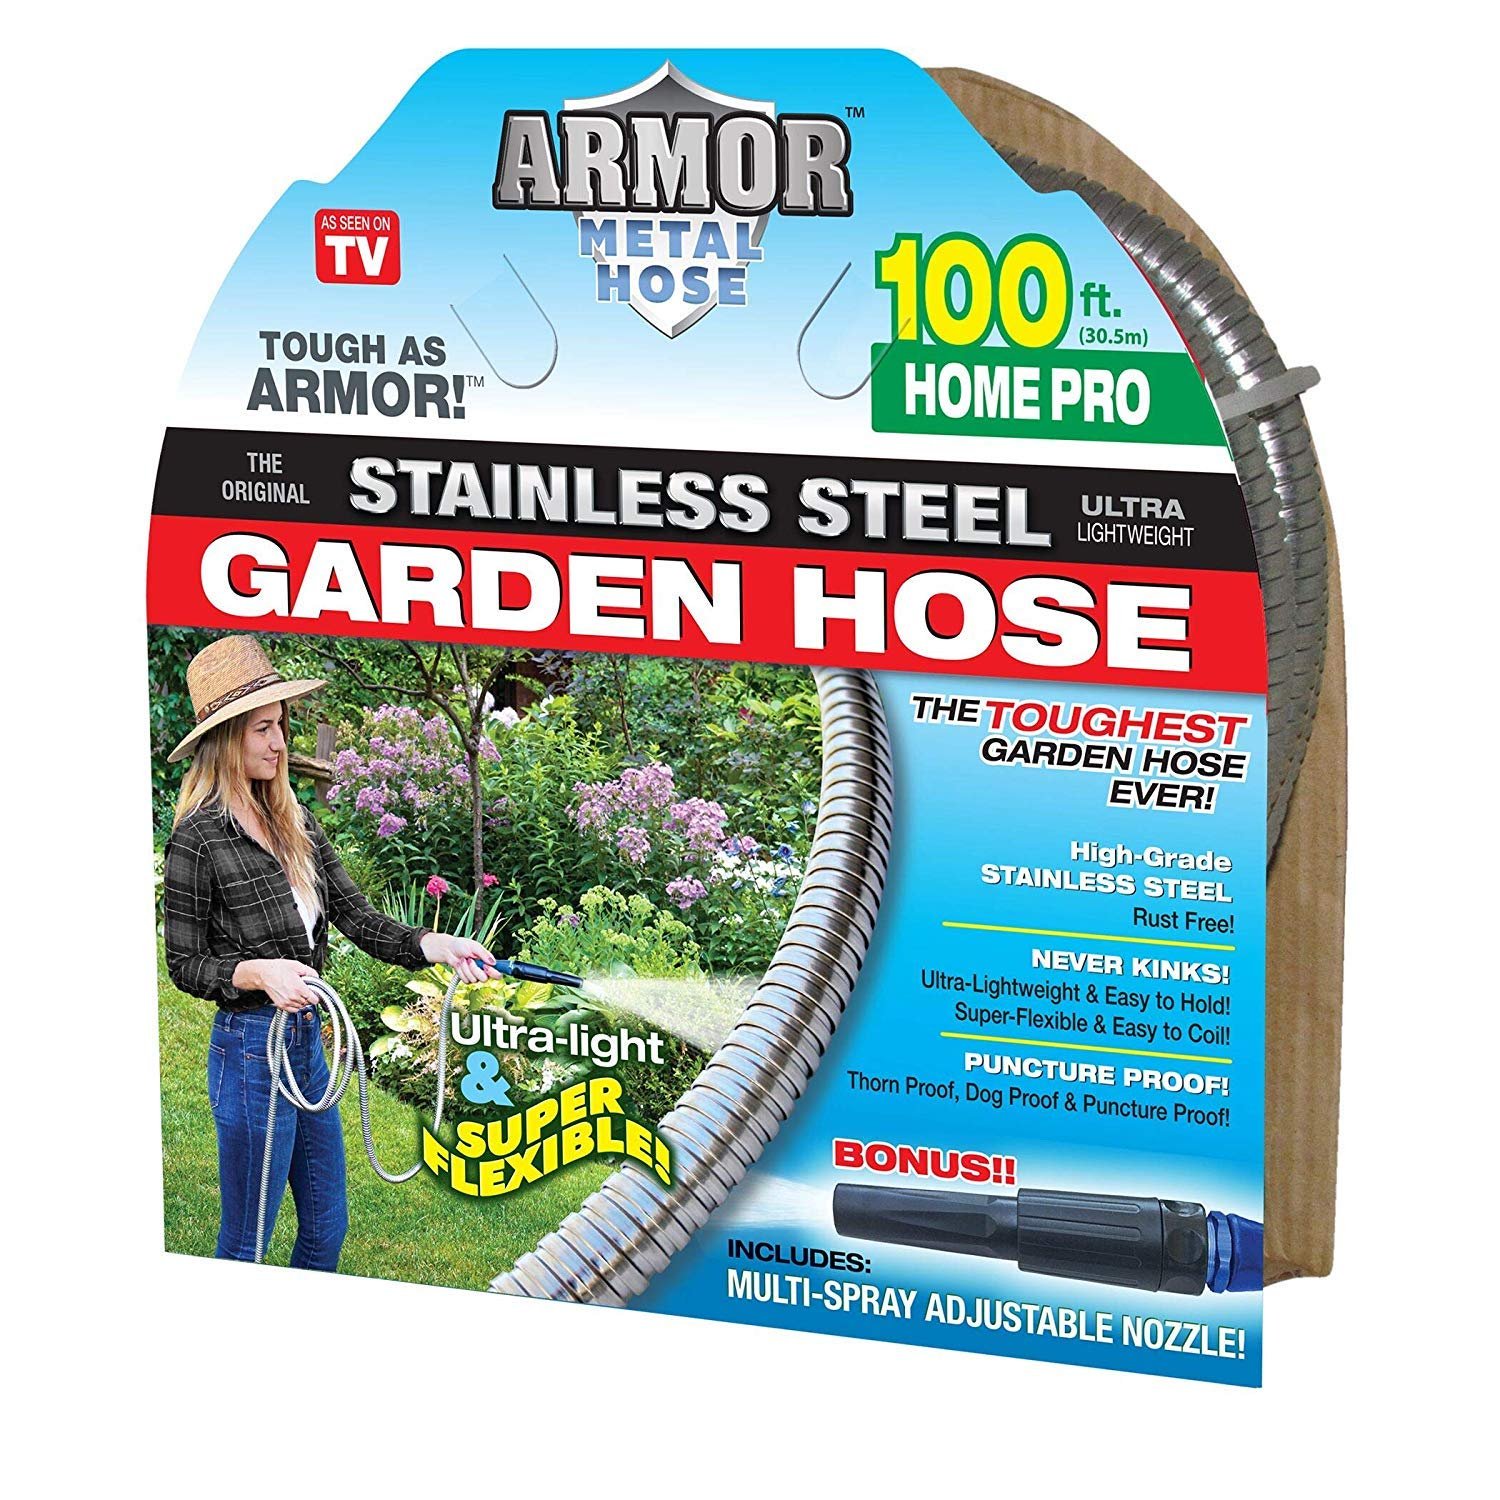 Stainless Steel Metal Hose (100' Armor Home Pro)